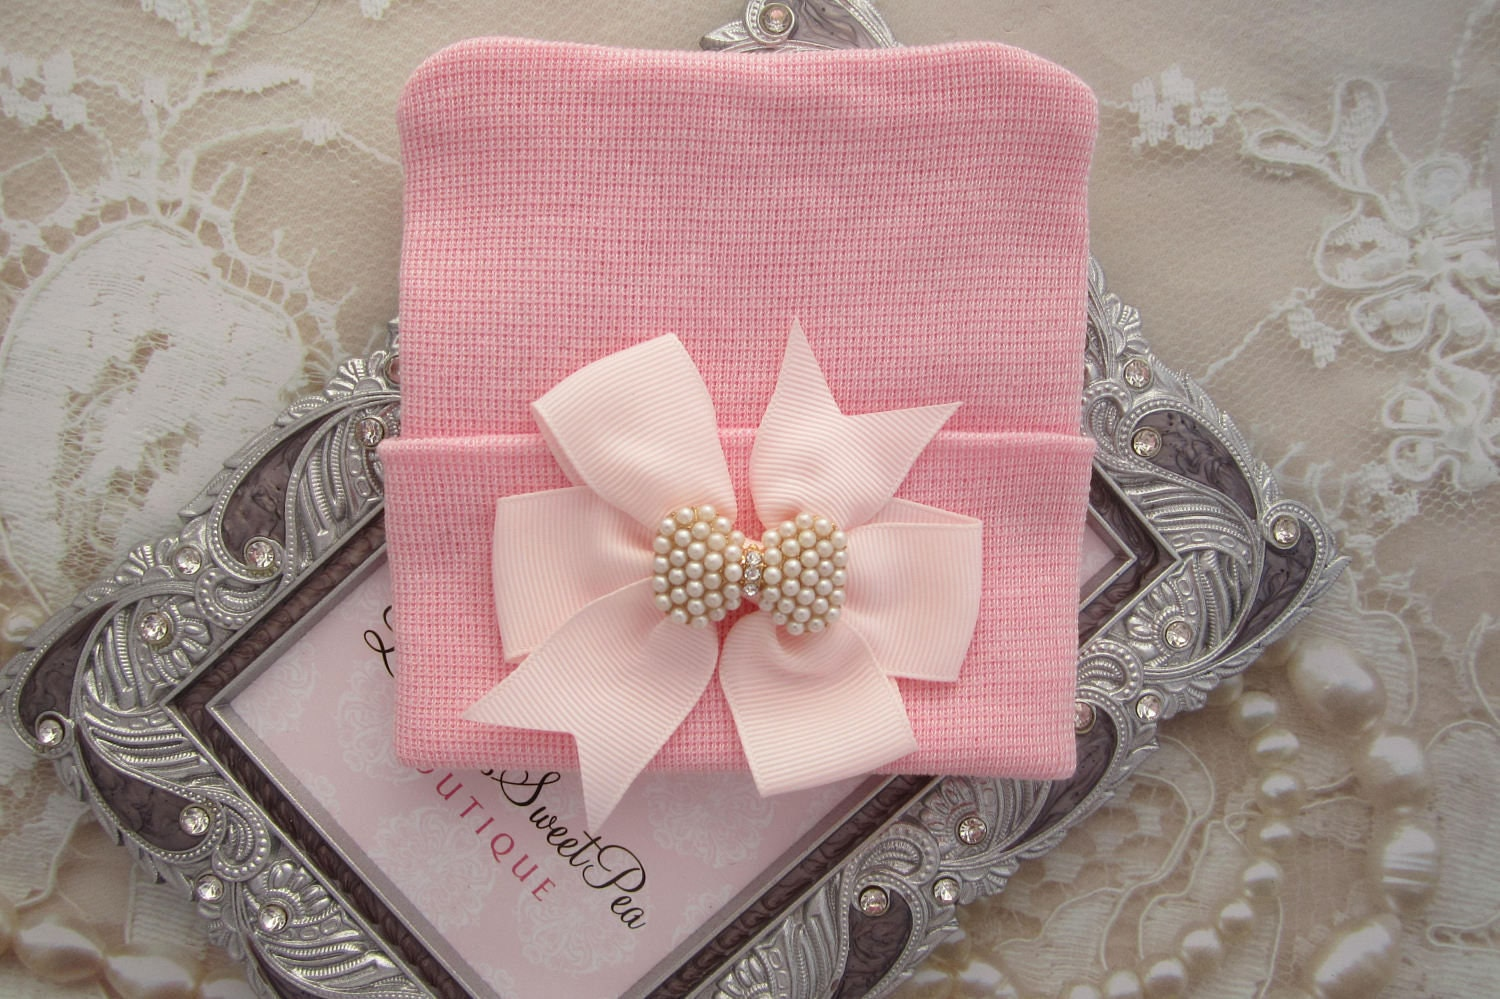 Pink Newborn Hospital Hat with a Pink Grosgrain Bow Adorned